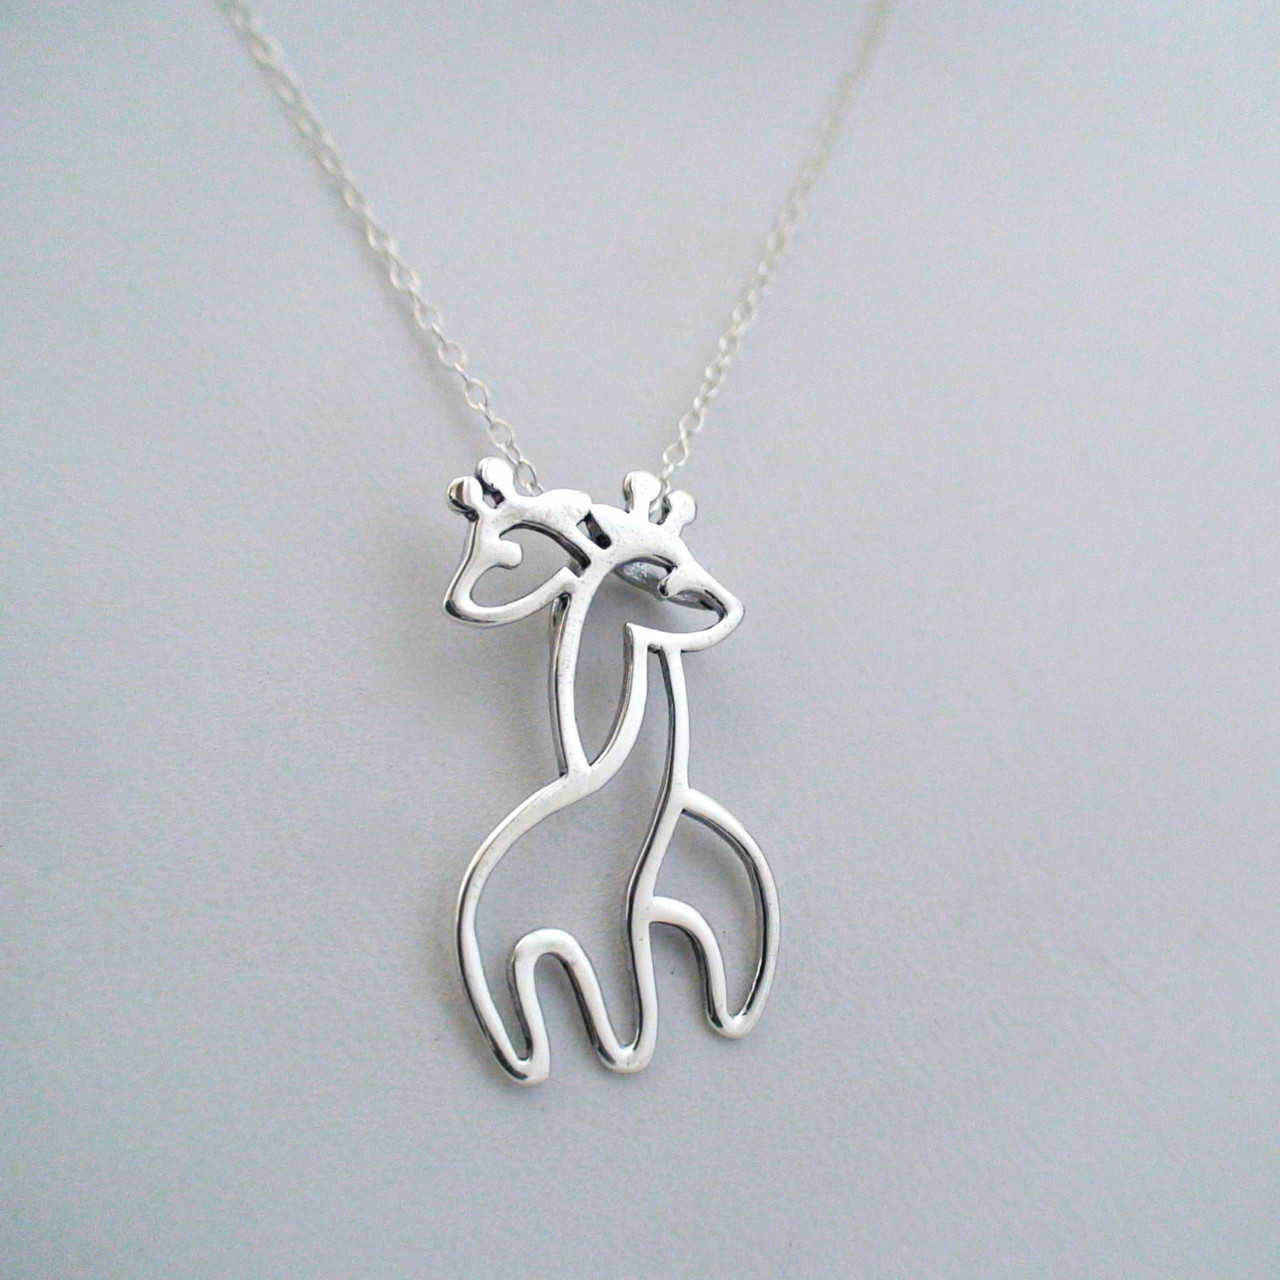 ebay animal safari sterling charm zoo giraffe pendant africa silver necklace bhp